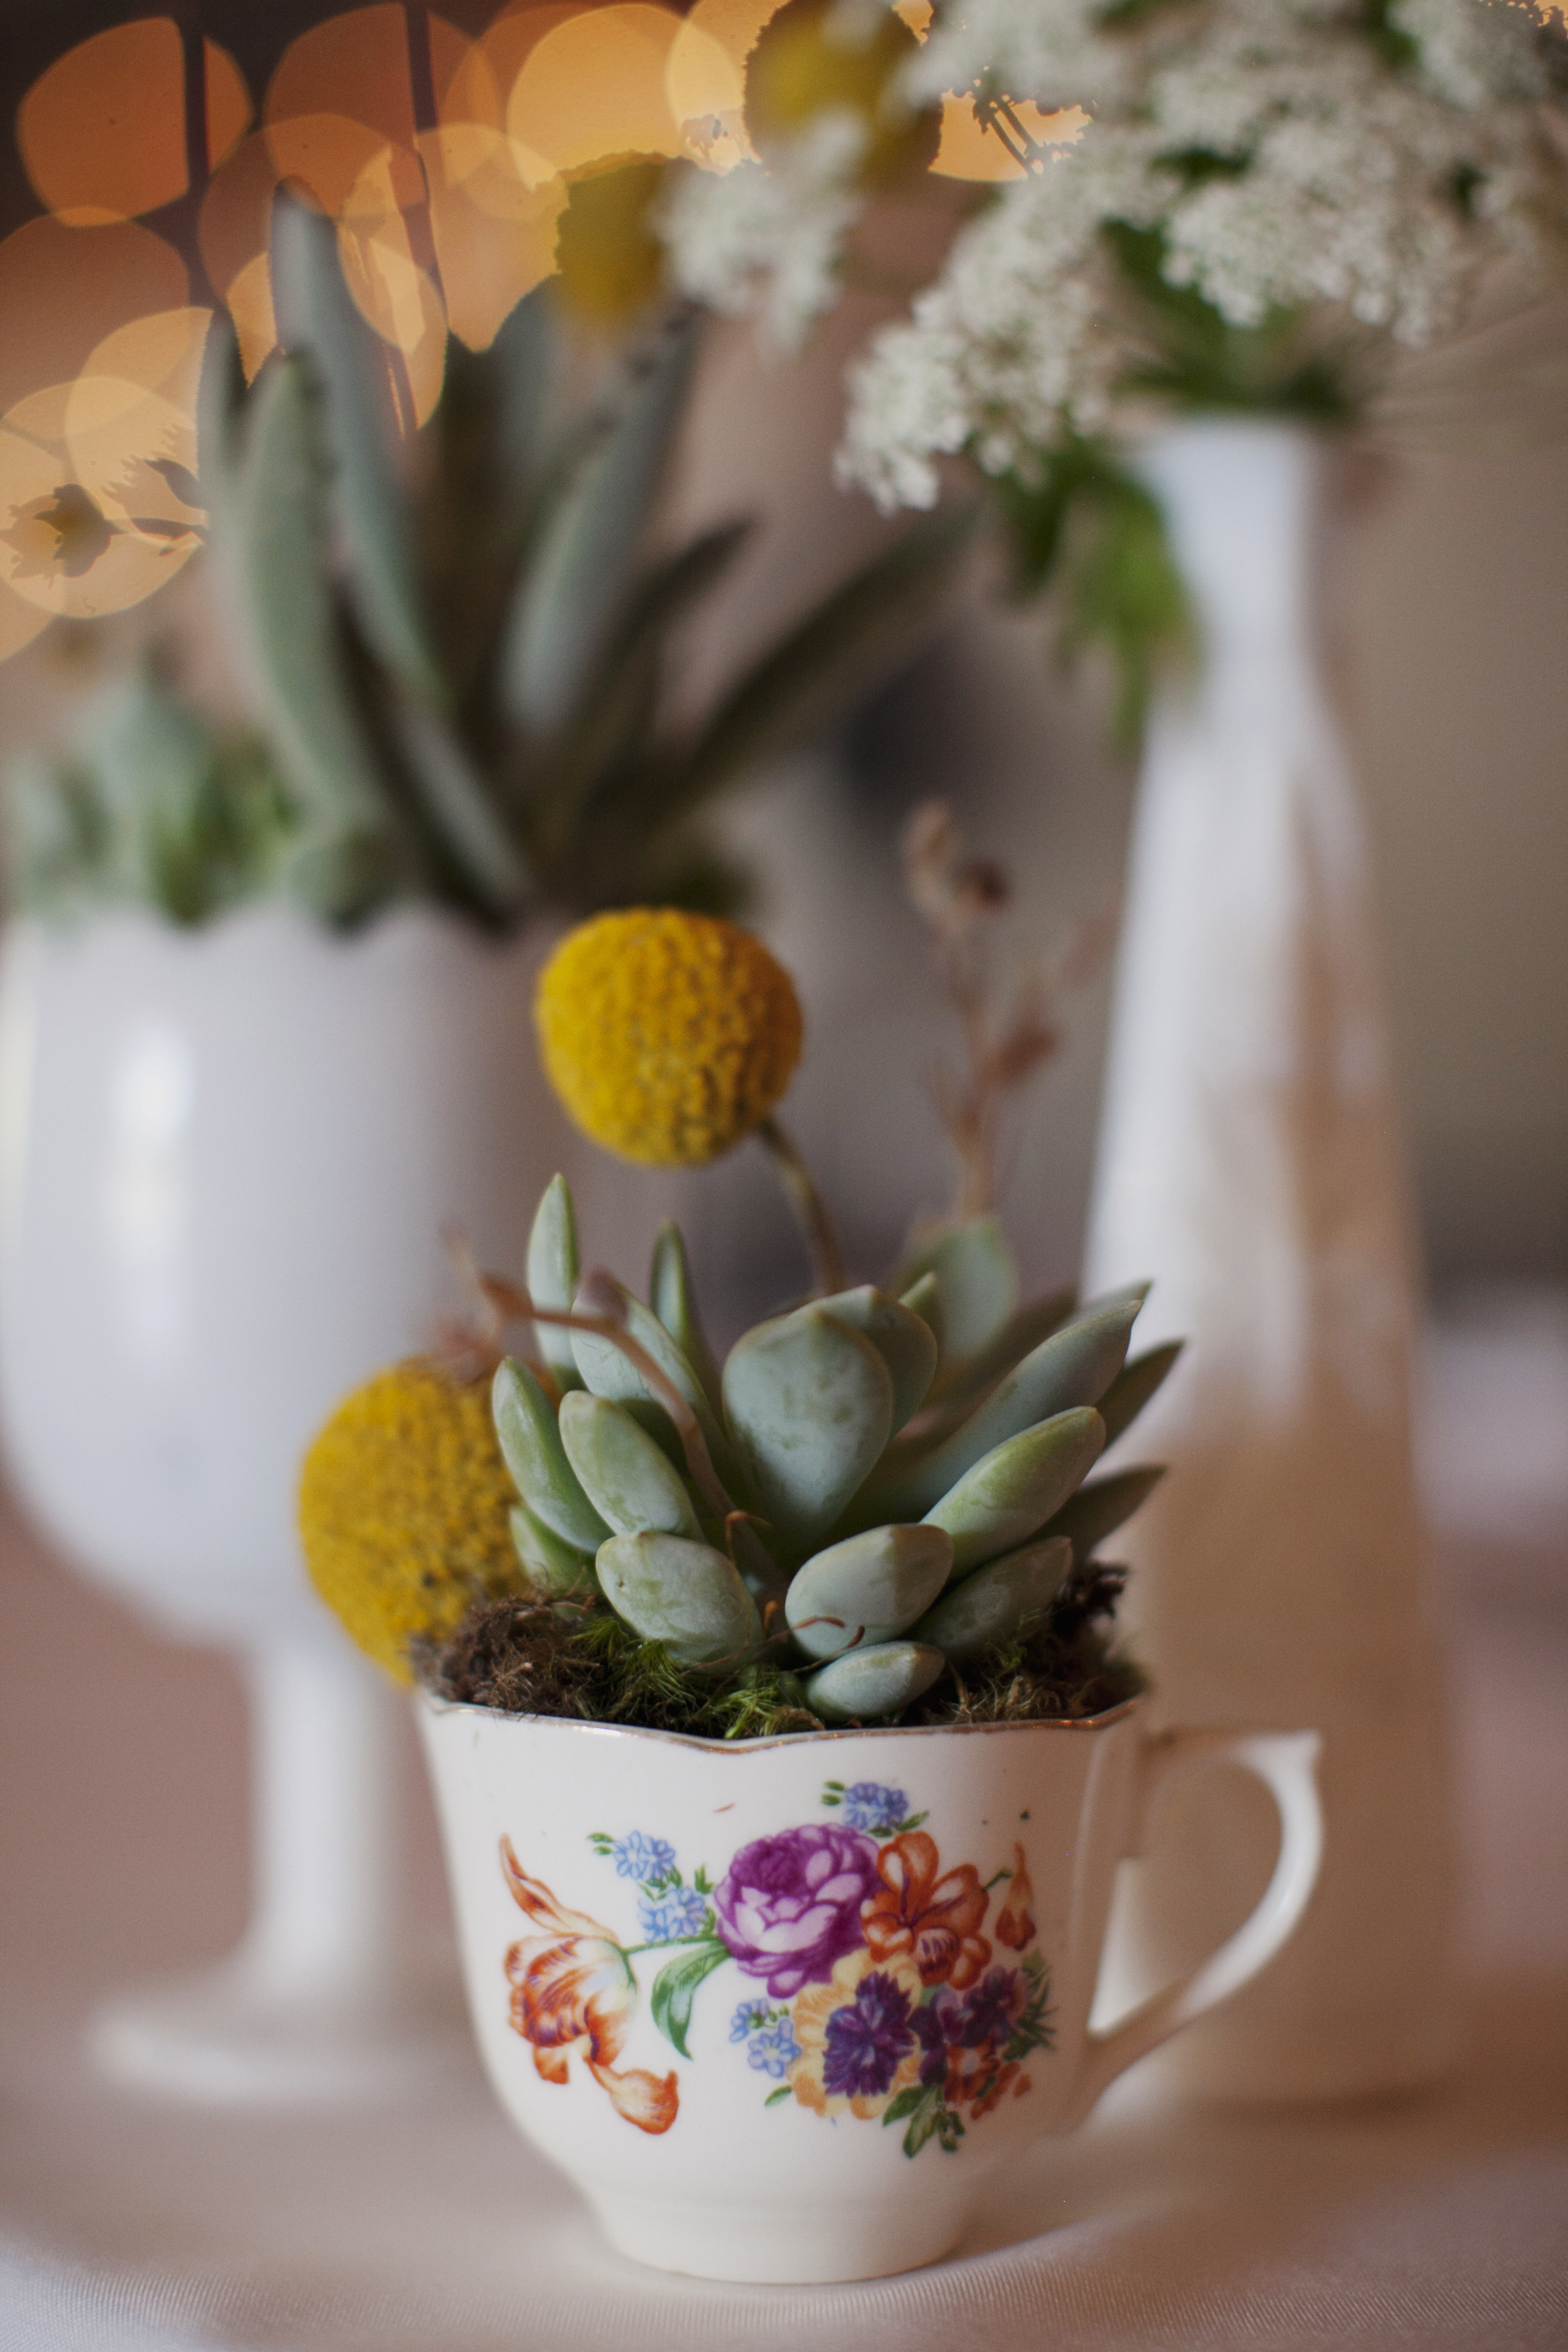 Flowers & Decor, Decor, white, yellow, Tea, Cup, Vases, Billy, Balls, Andrea eric